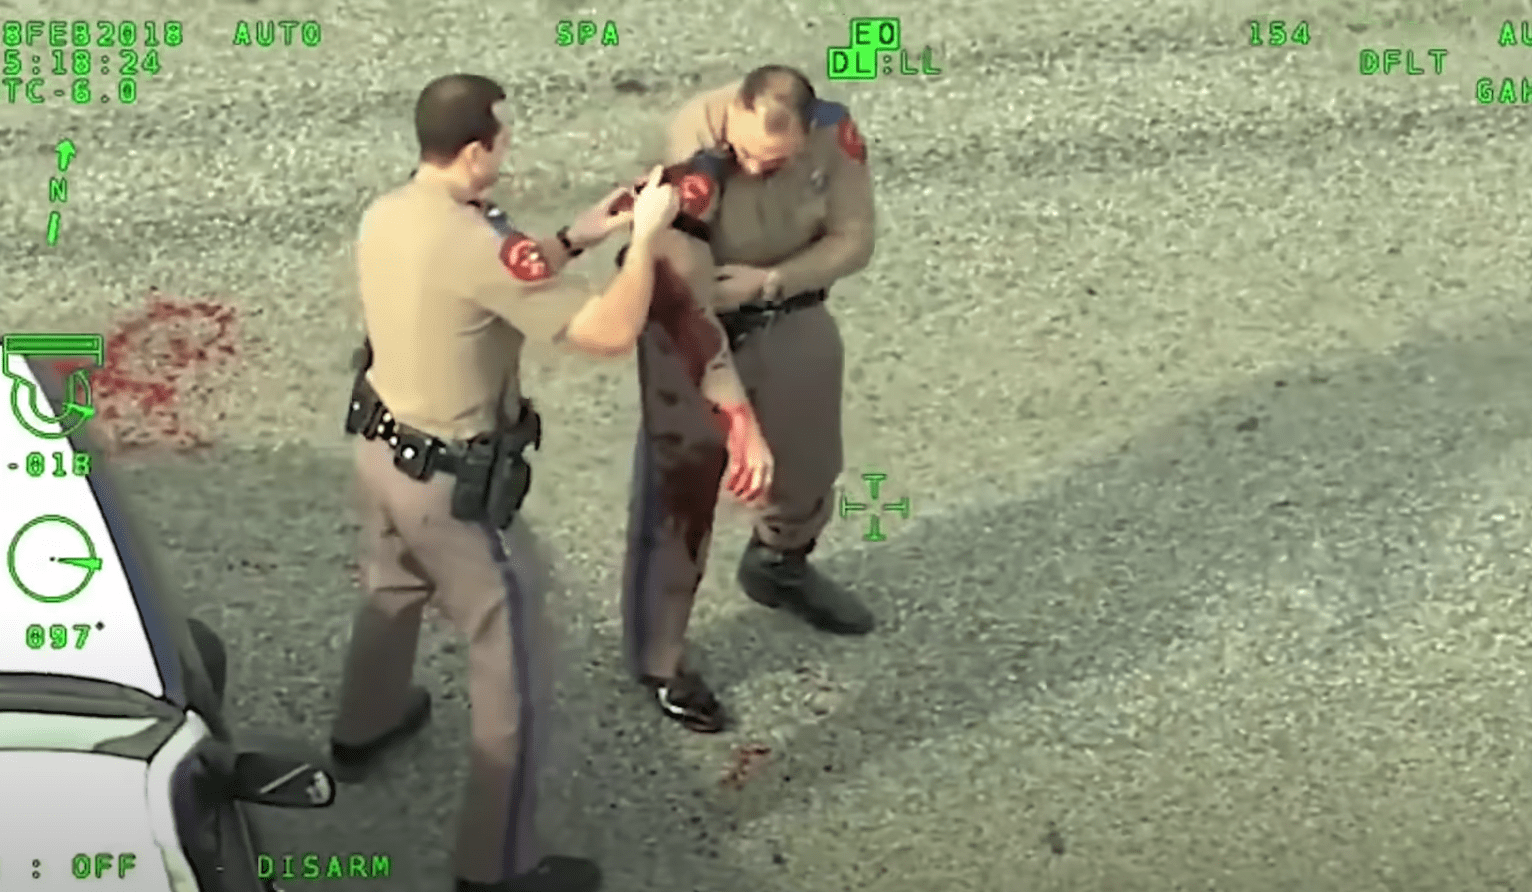 It's a felony to assault a police officer. Virginia lawmakers are trying to change that - and much more.